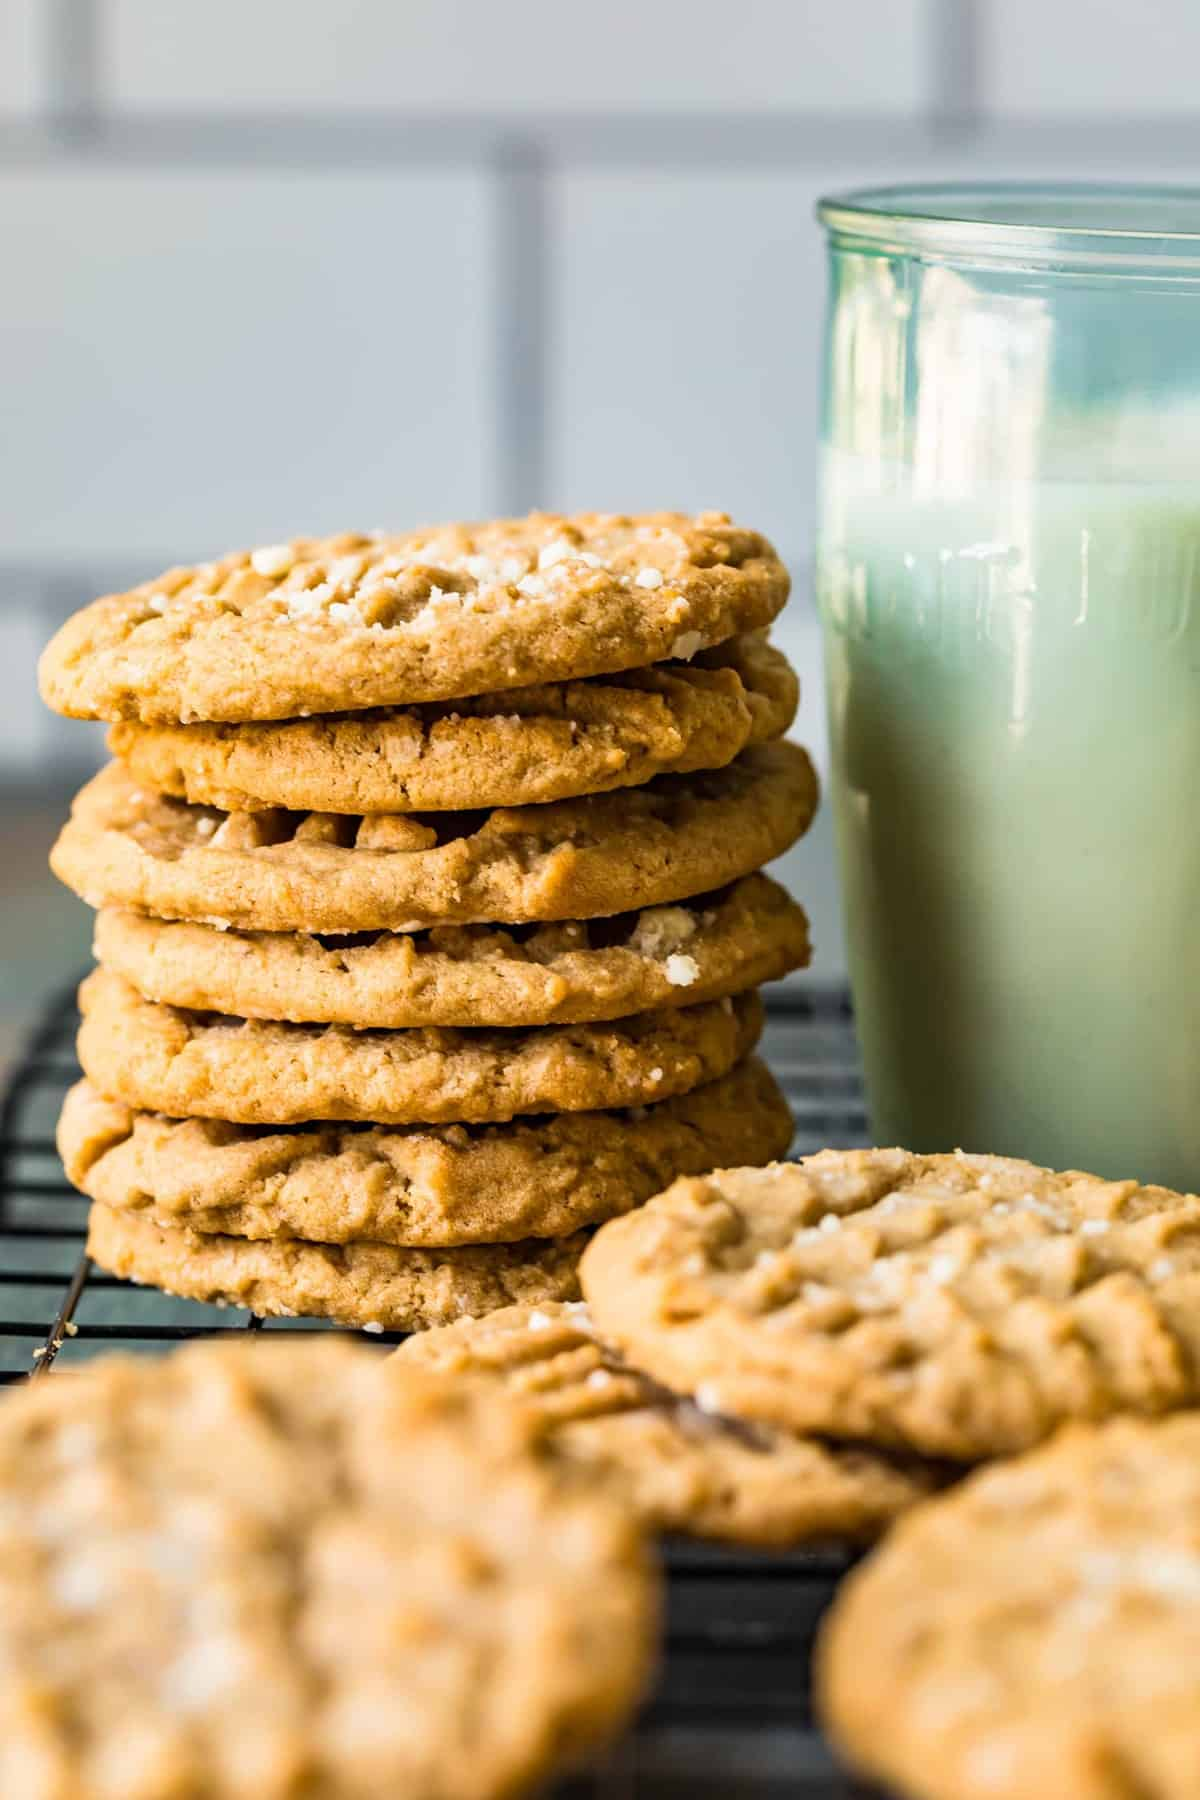 A stack of peanut butter cookies next to a glass of milk